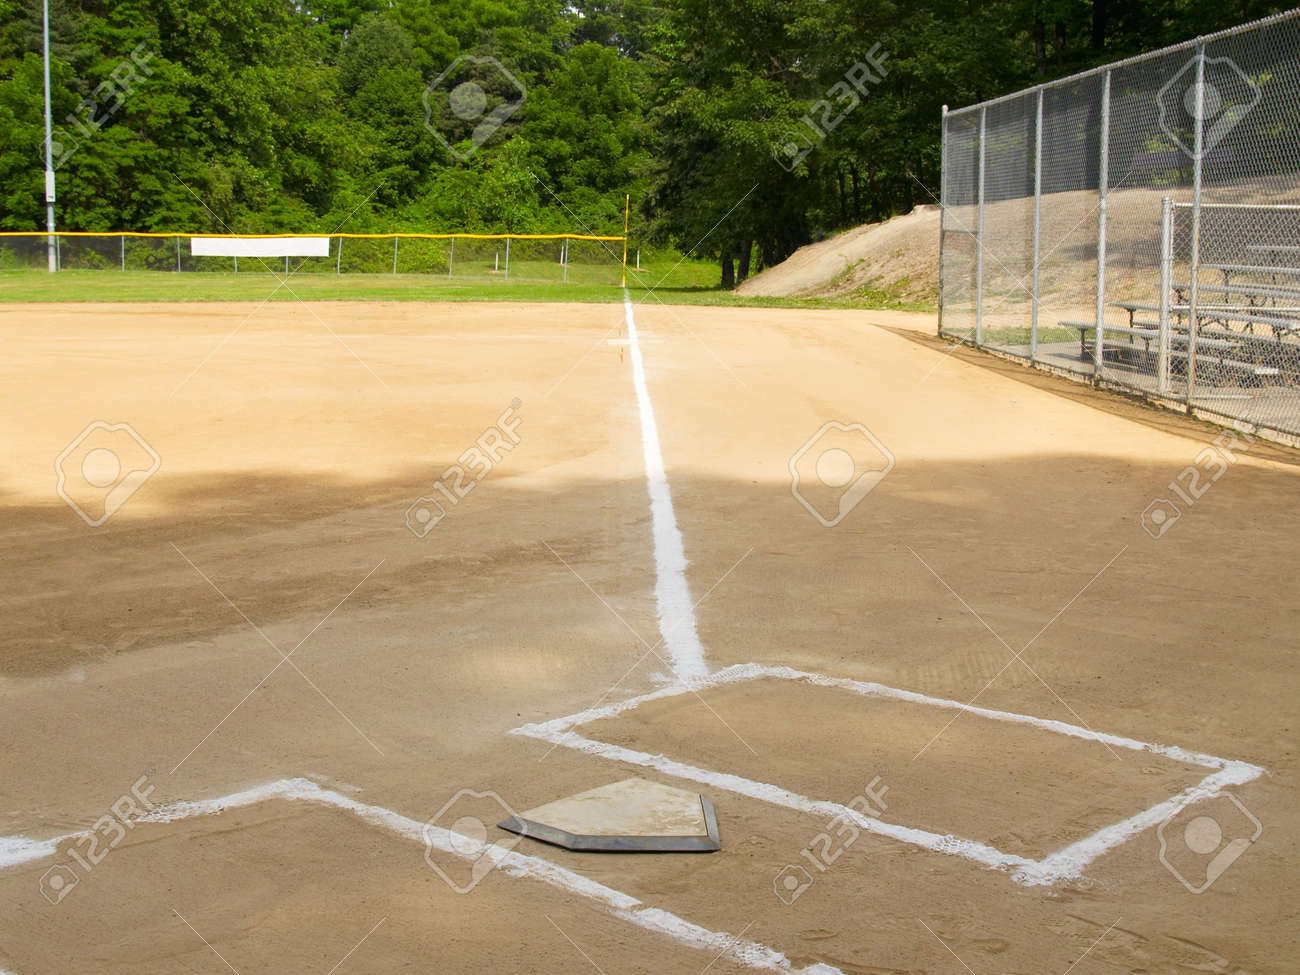 home plate and first base foul line on a small town ball diamond